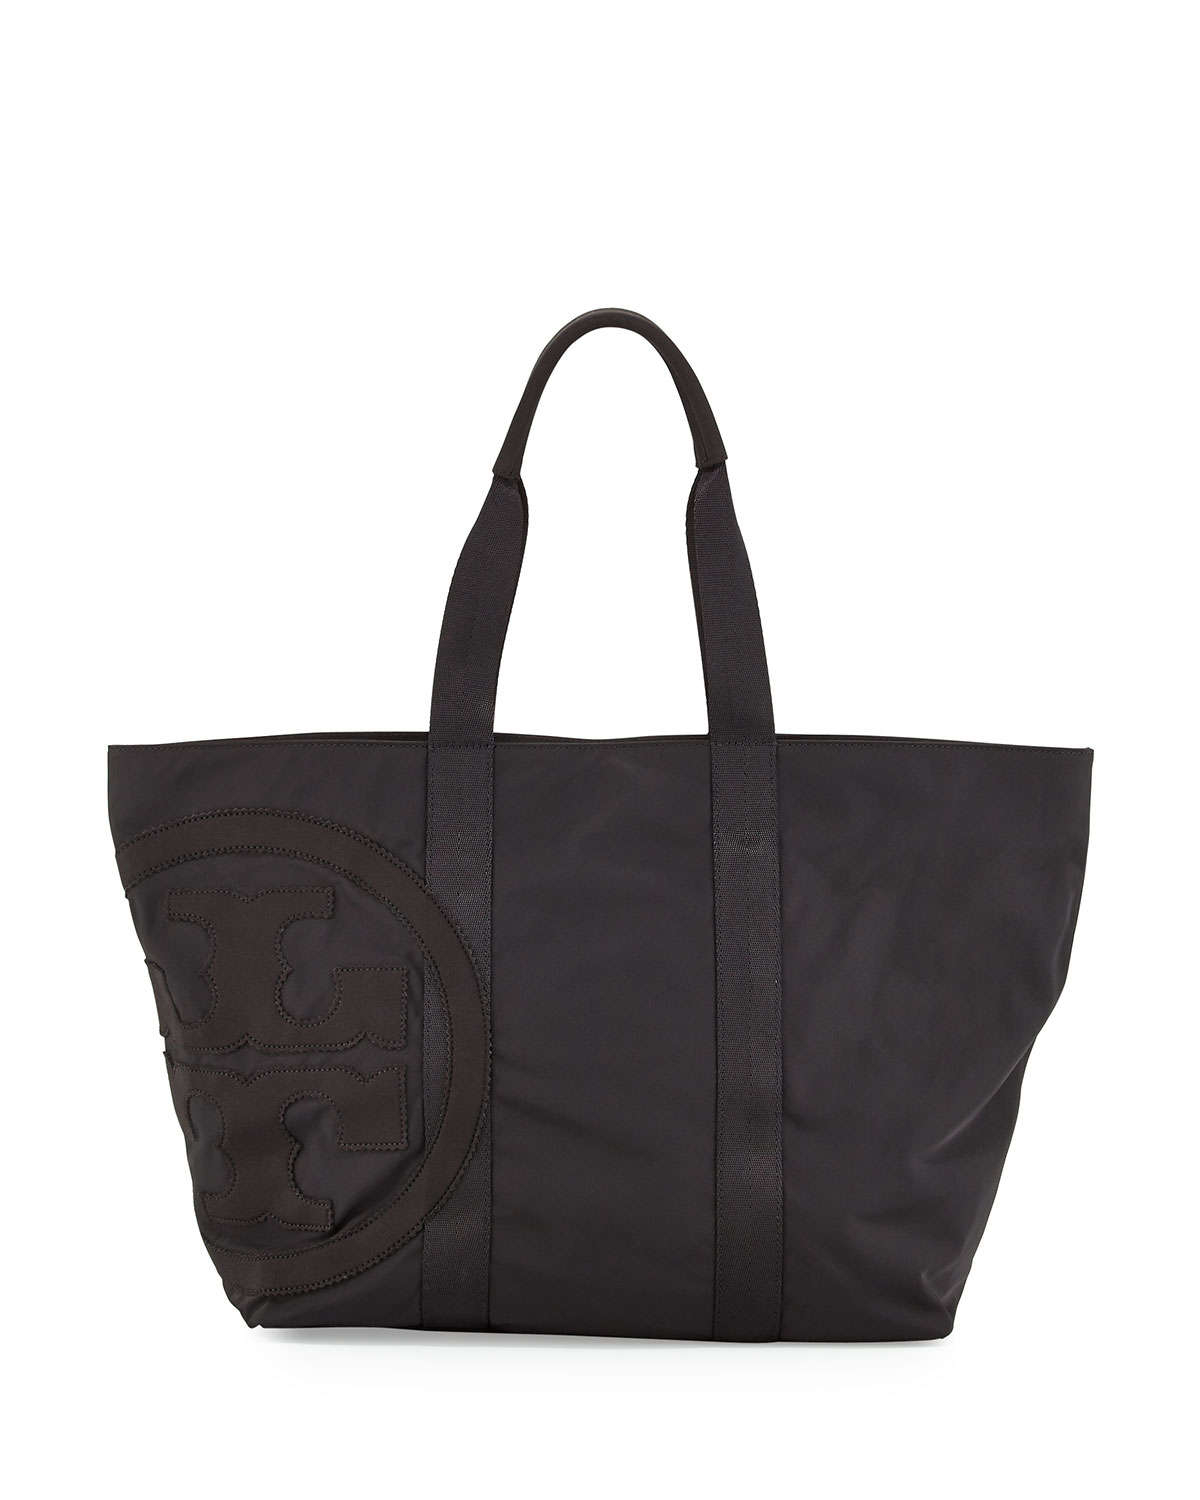 Tory burch Penn Nylon Mid-Zip Tote Bag in Black | Lyst